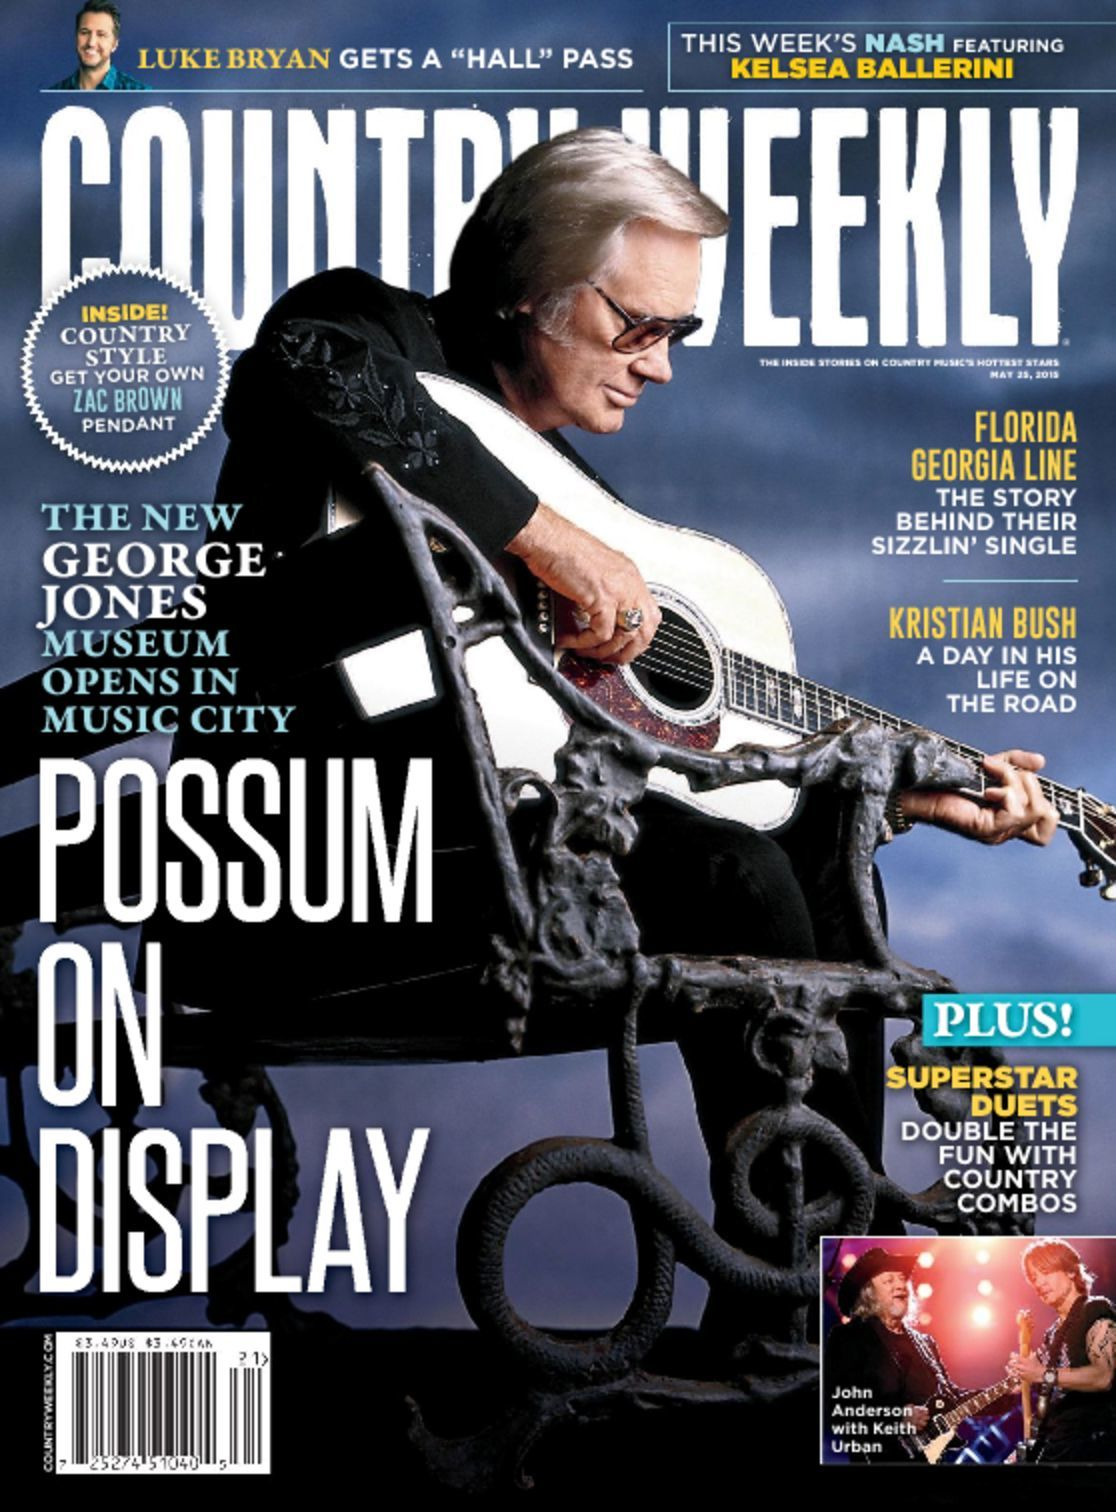 Discount Auto Inc >> Country Weekly Magazine - DiscountMags.com